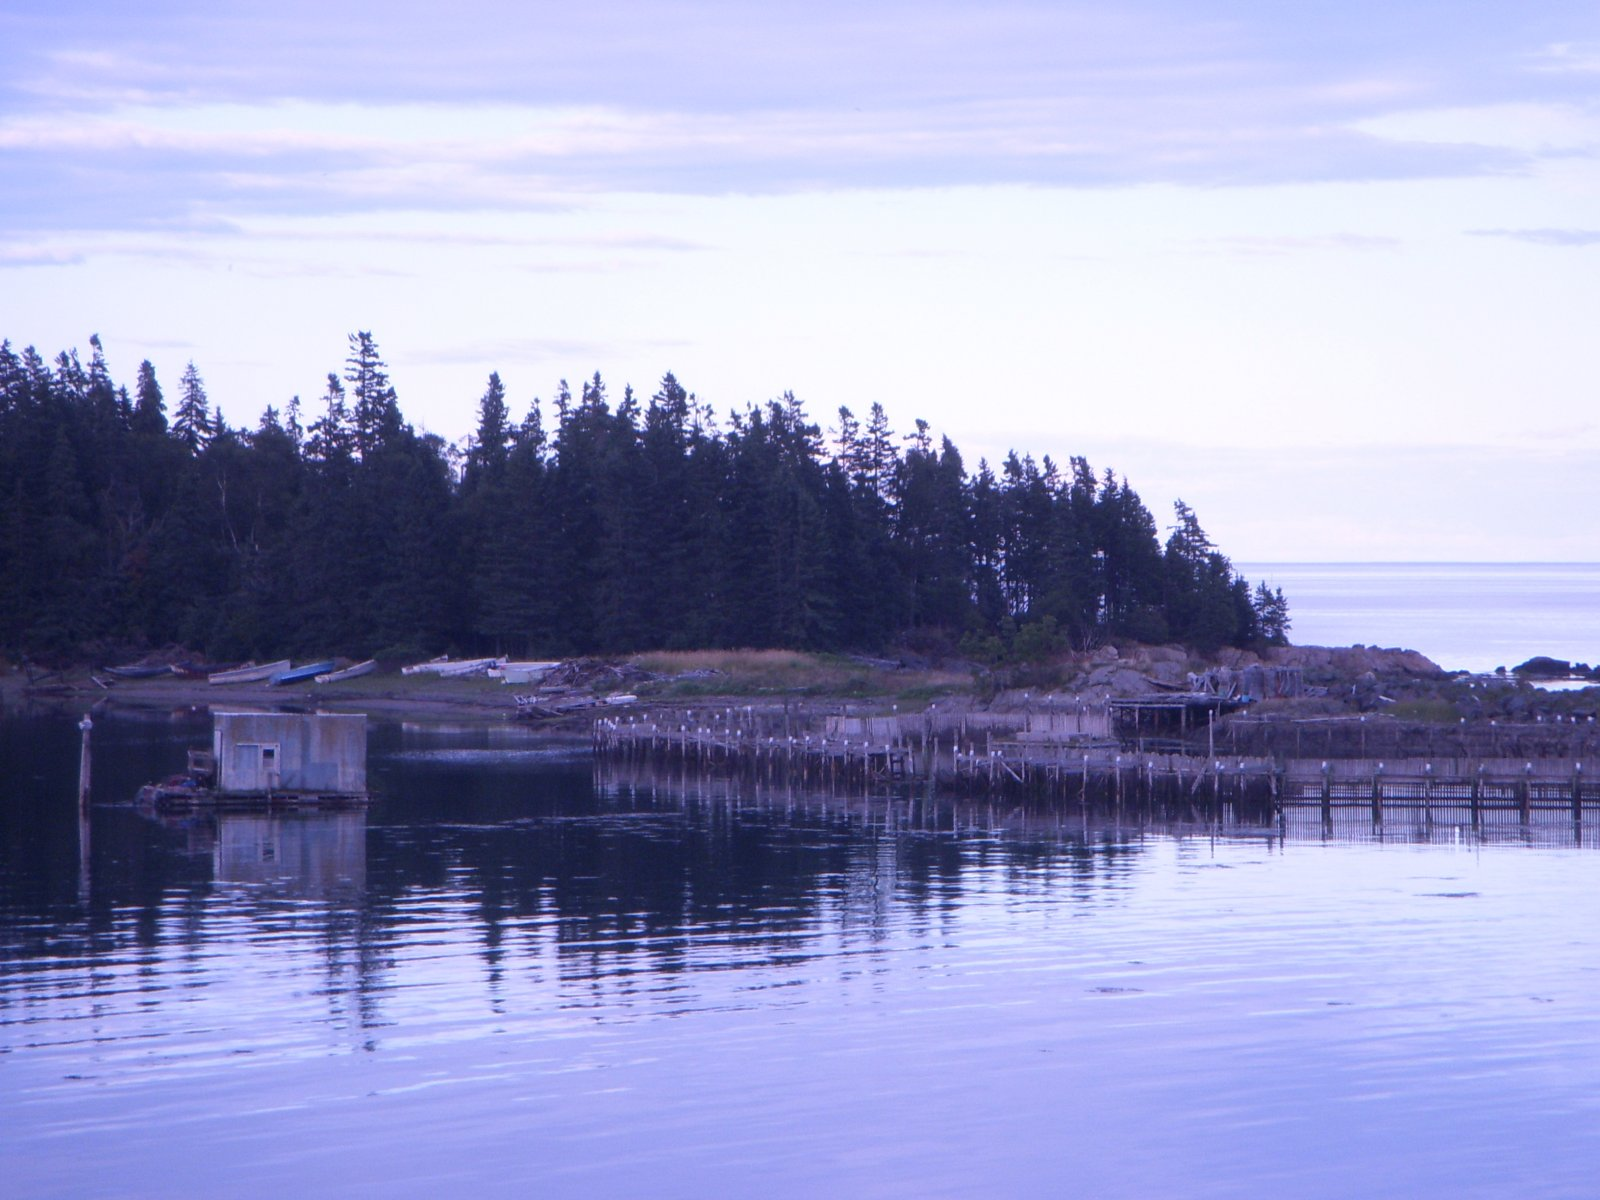 Click image for larger version  Name:Deer Island Aug2011 086.jpg Views:65 Size:228.6 KB ID:138680